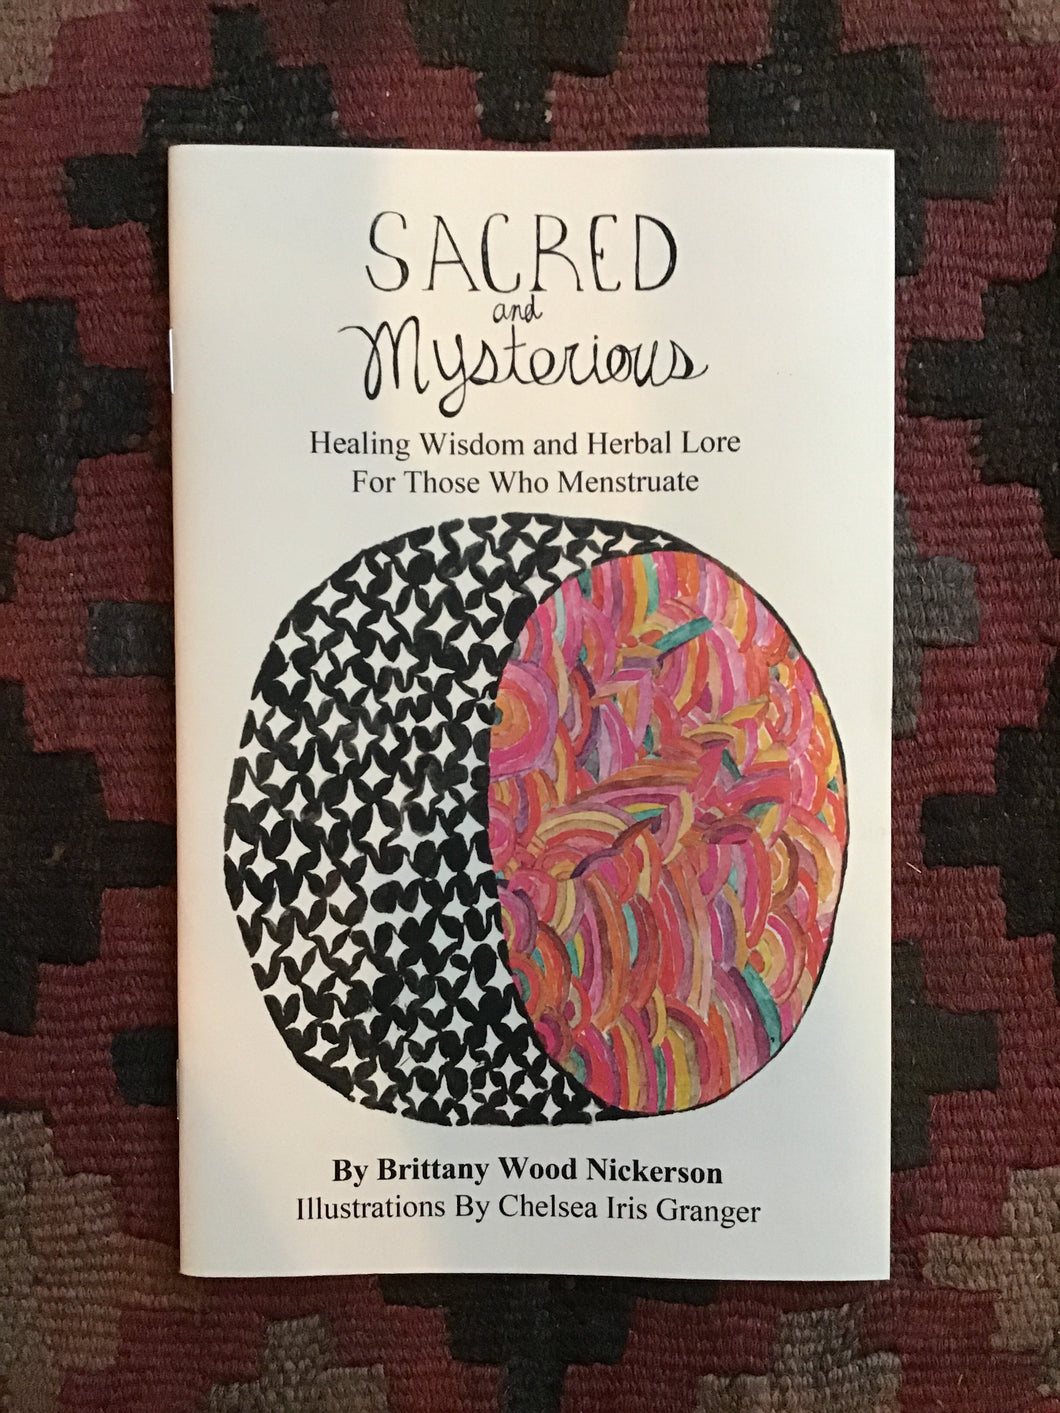 Sacred and Mysterious: Healing Wisdom and Herbal Lore For Those Who Menstruate